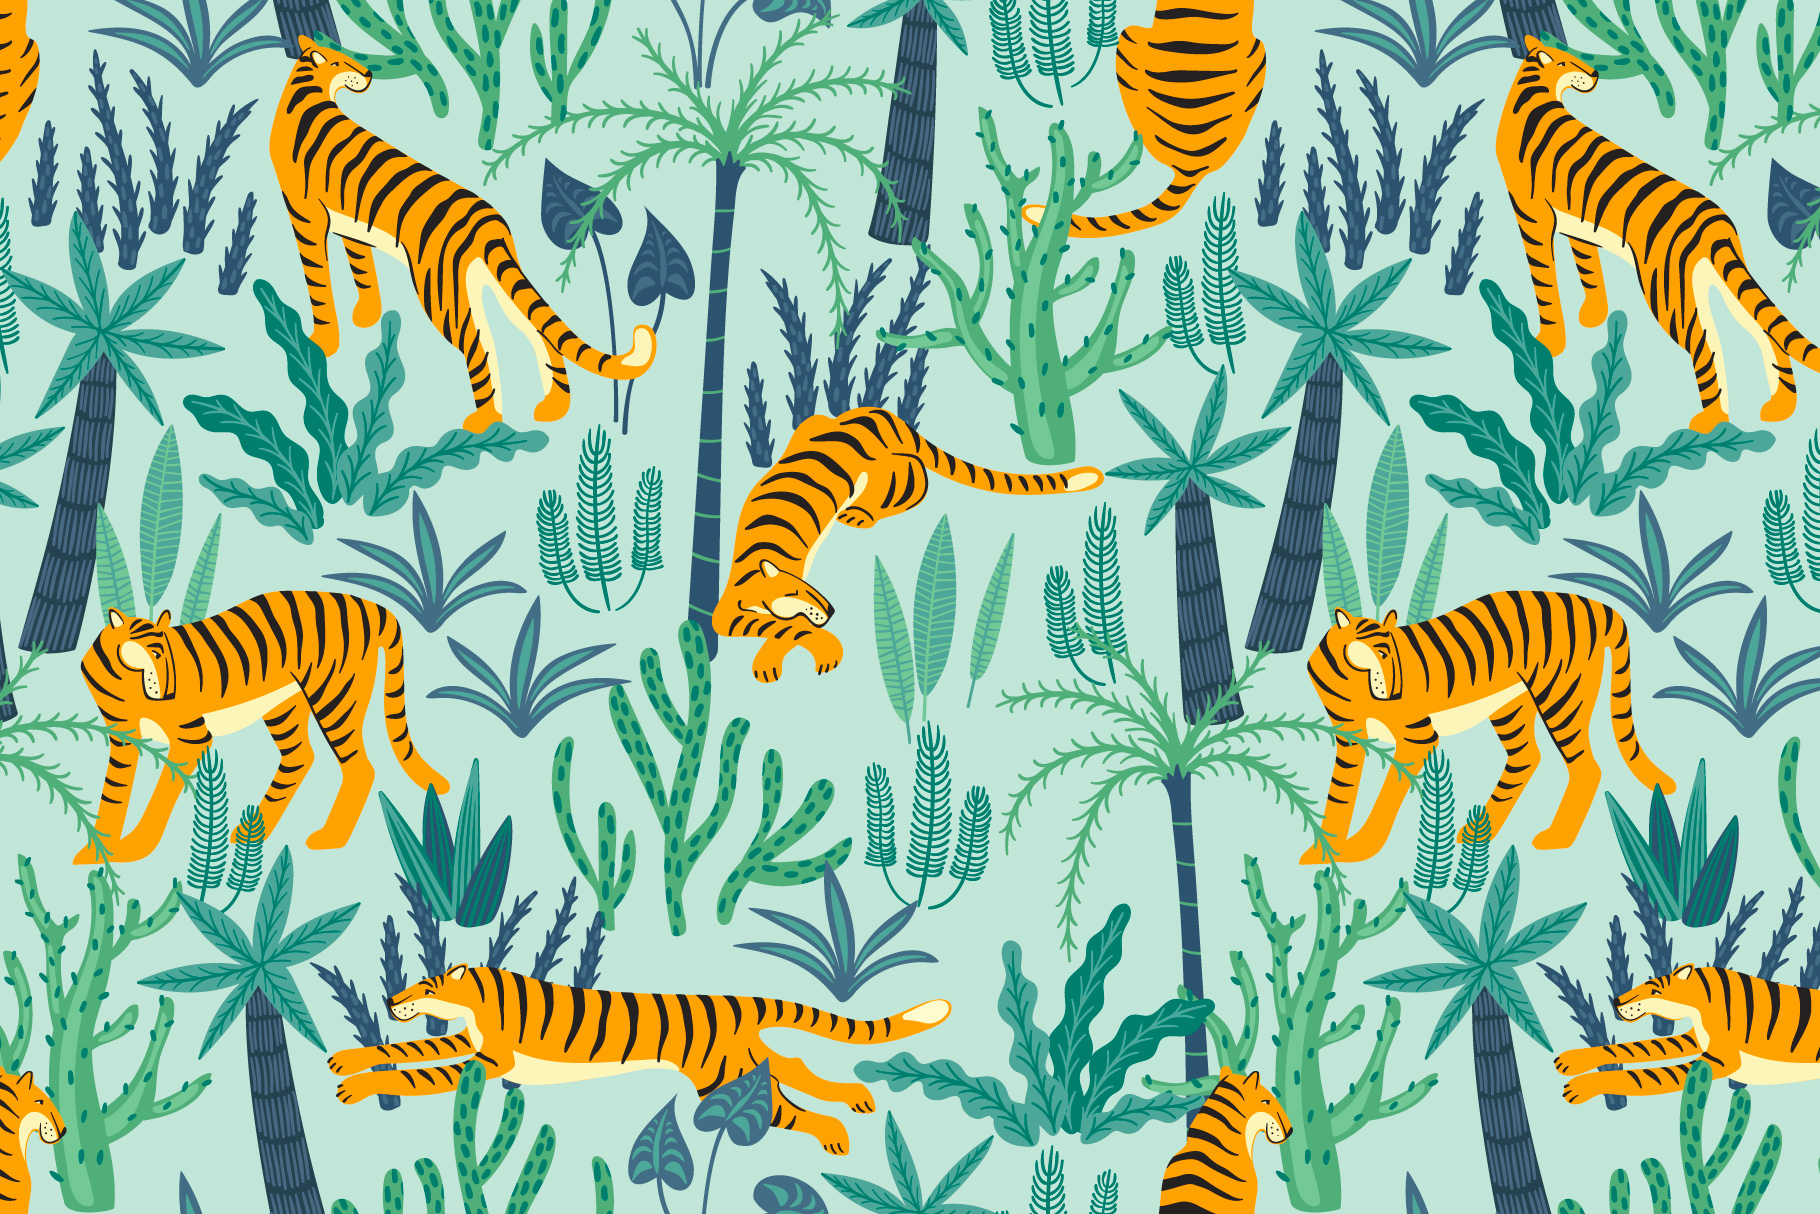 Tiger collection. Patterns & clipart example image 4